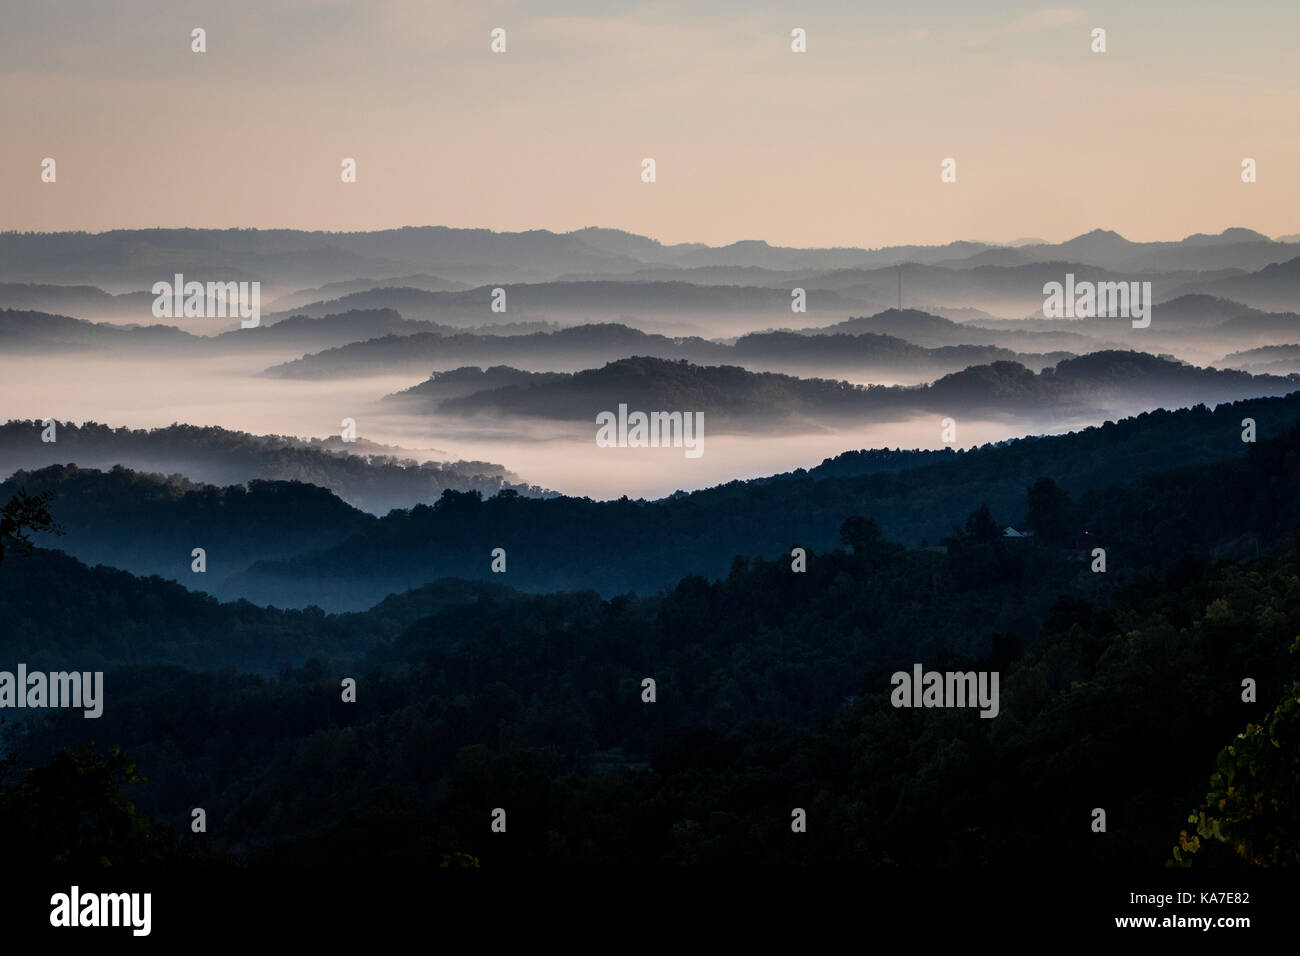 Morning fog covers the valleys in Central Appalachia. - Stock Image